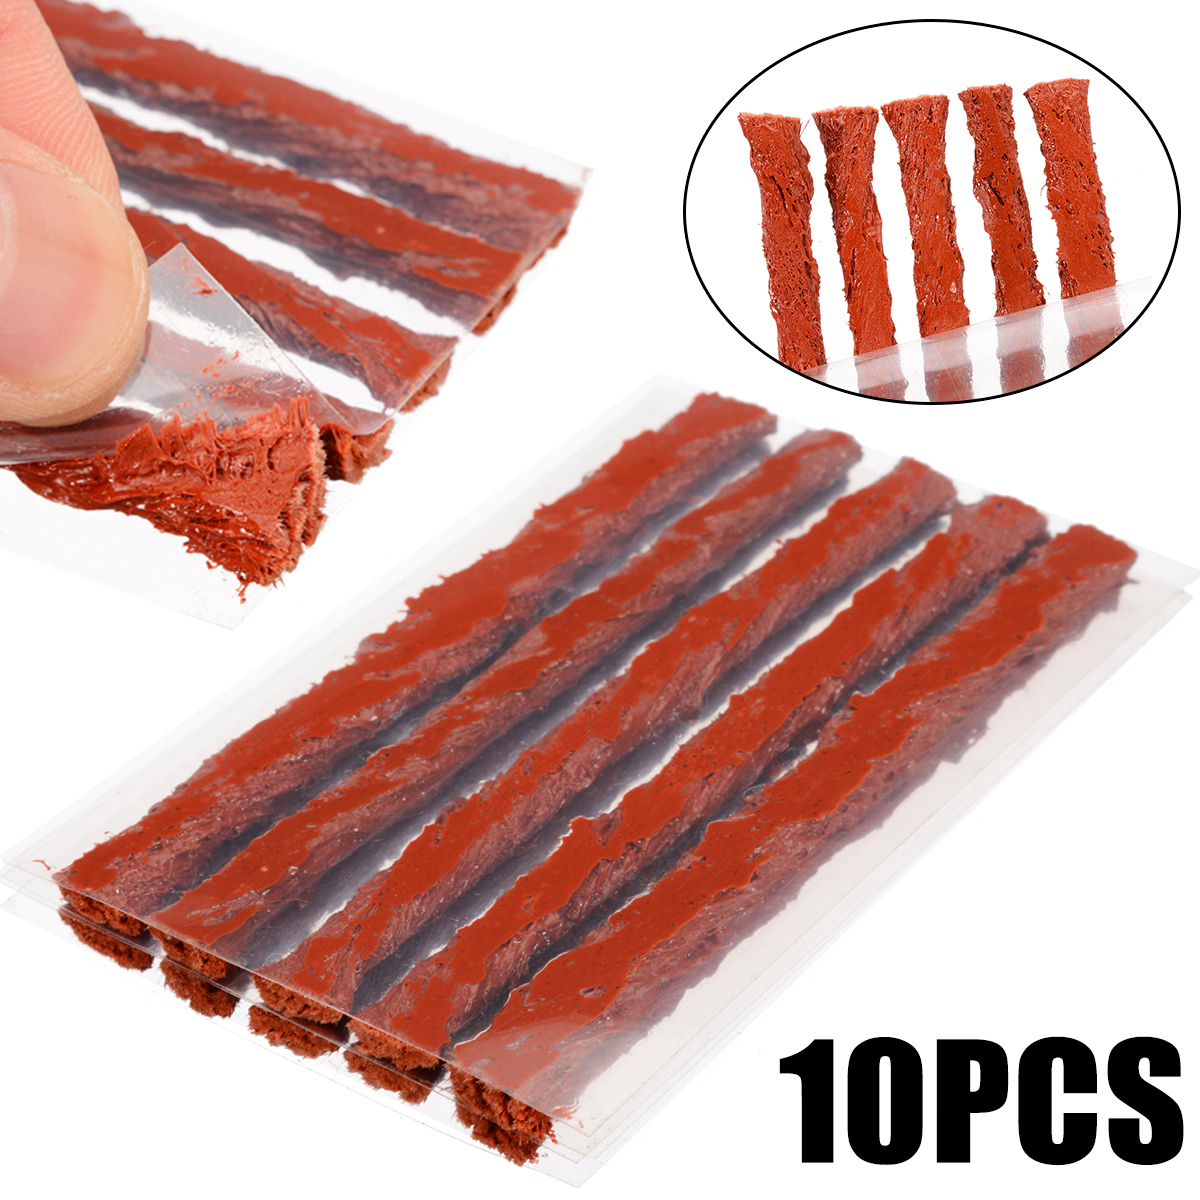 10pcs/set Rubber Strip Car Motorcycle Tire Tyre Puncture Repair Rubber Strip Tubeless Tire Repair Tools Strips-in Tire Repair Tools from Automobiles & Motorcycles